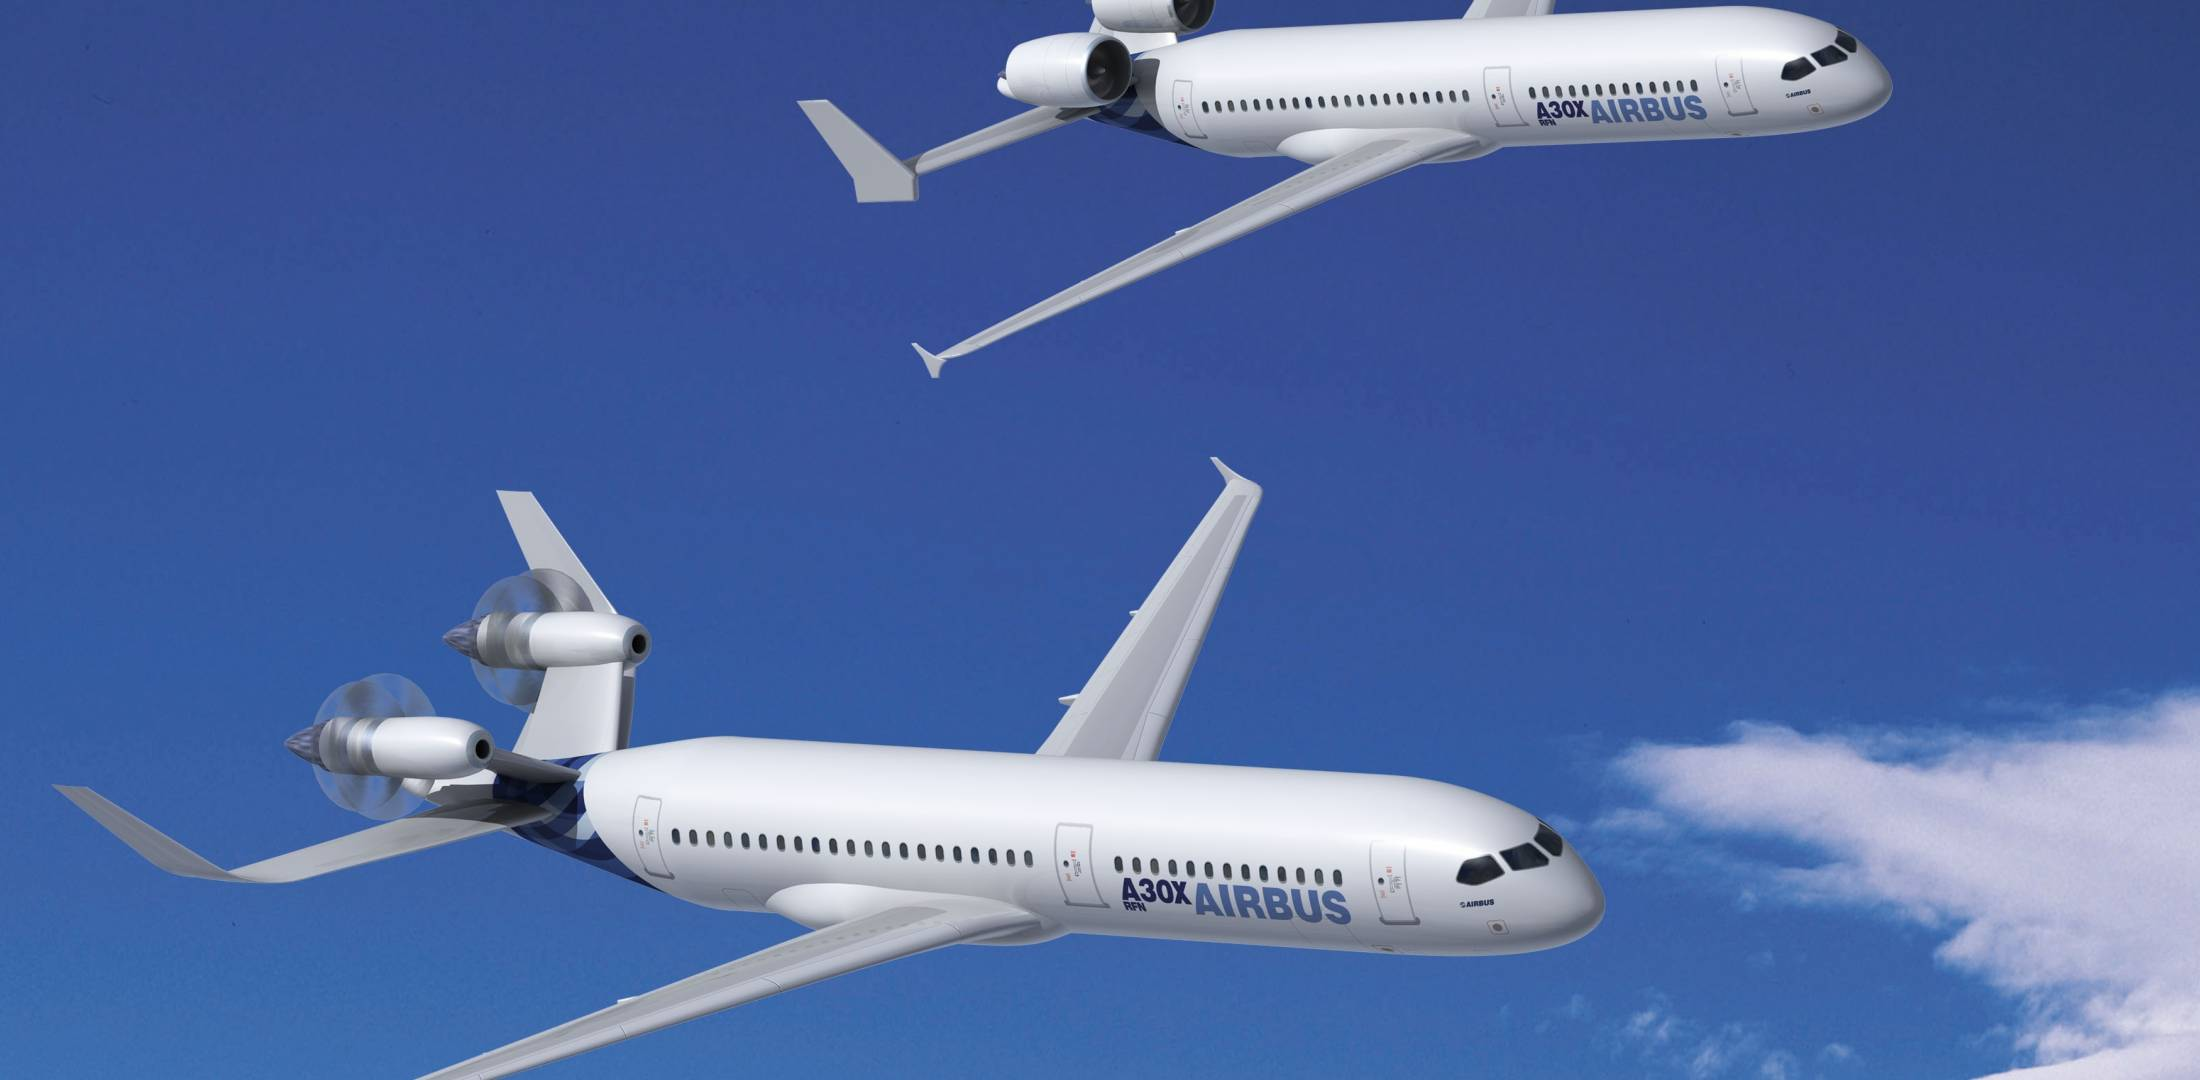 Research and development efforts at Airbus are now focusing on areas such as laminar-flow aerodynamics and open-rotor engine applications.